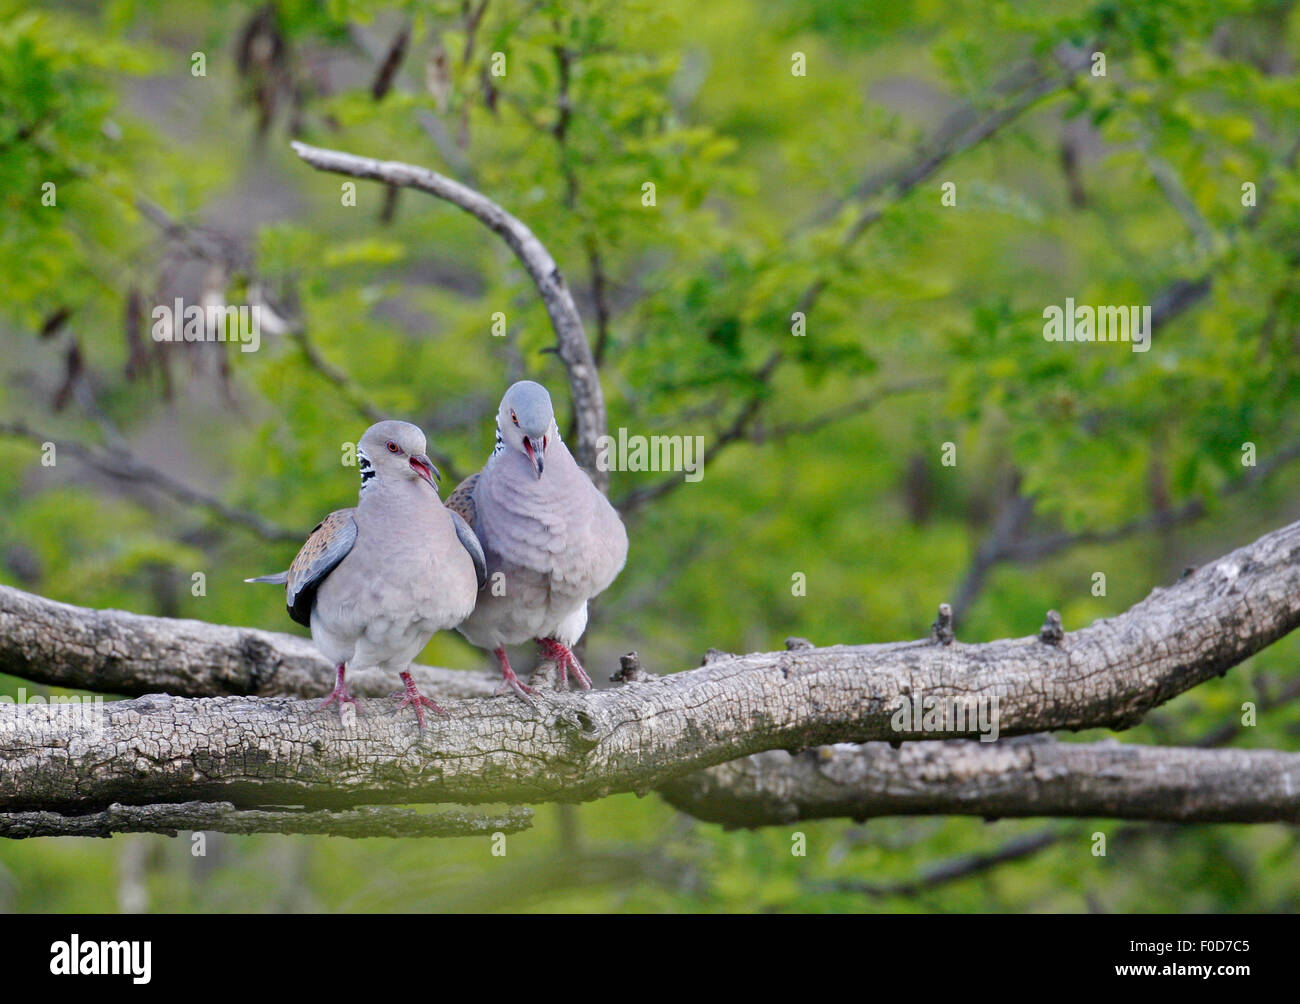 Turtle Dove (Streptopelia turtur) pair, Pusztaszer, Hungary, May 2008 - Stock Image